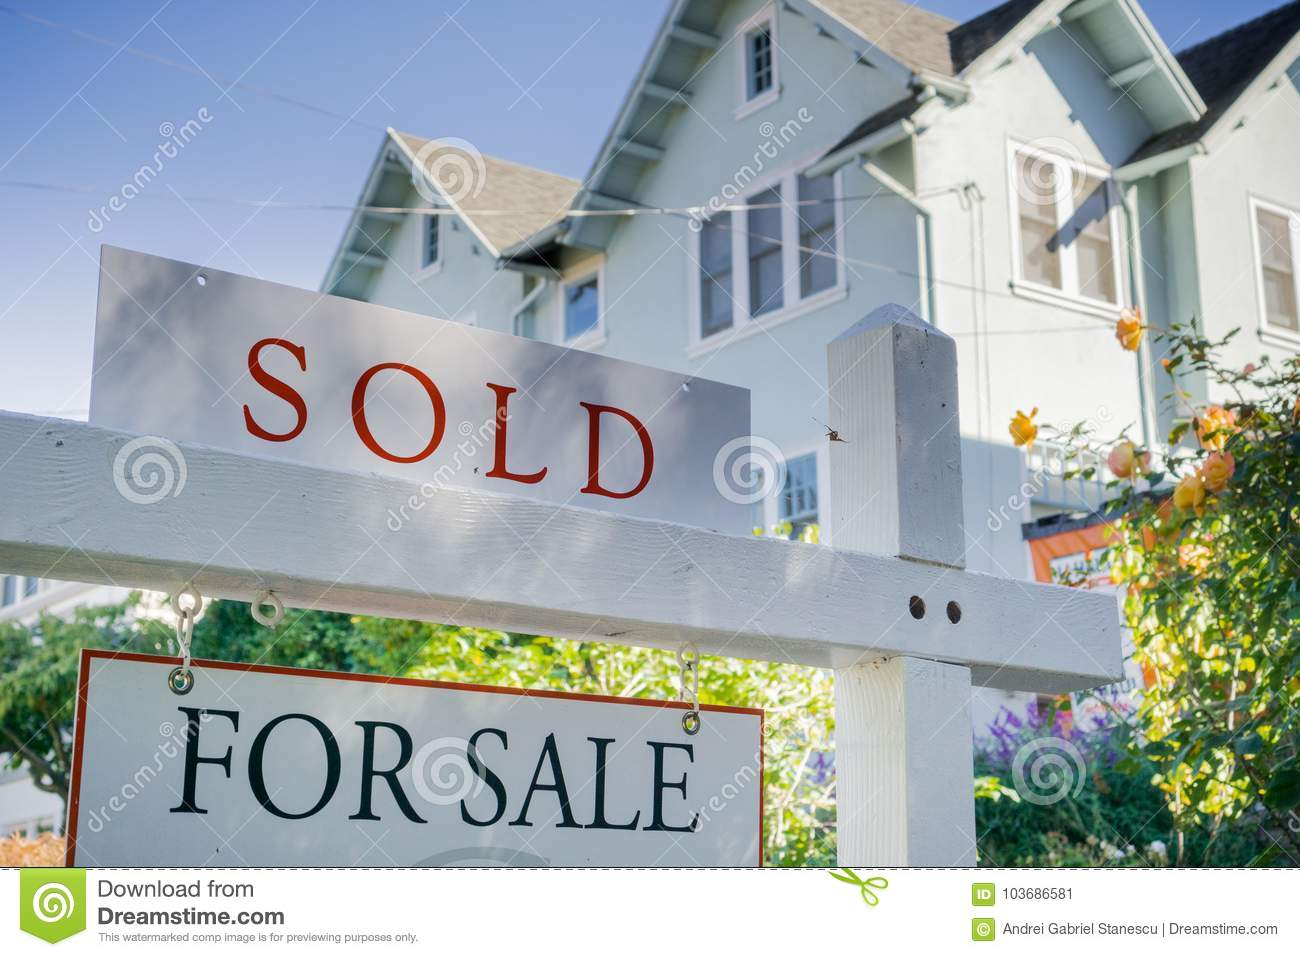 Sold sign in front of a house in a residential neighborhood